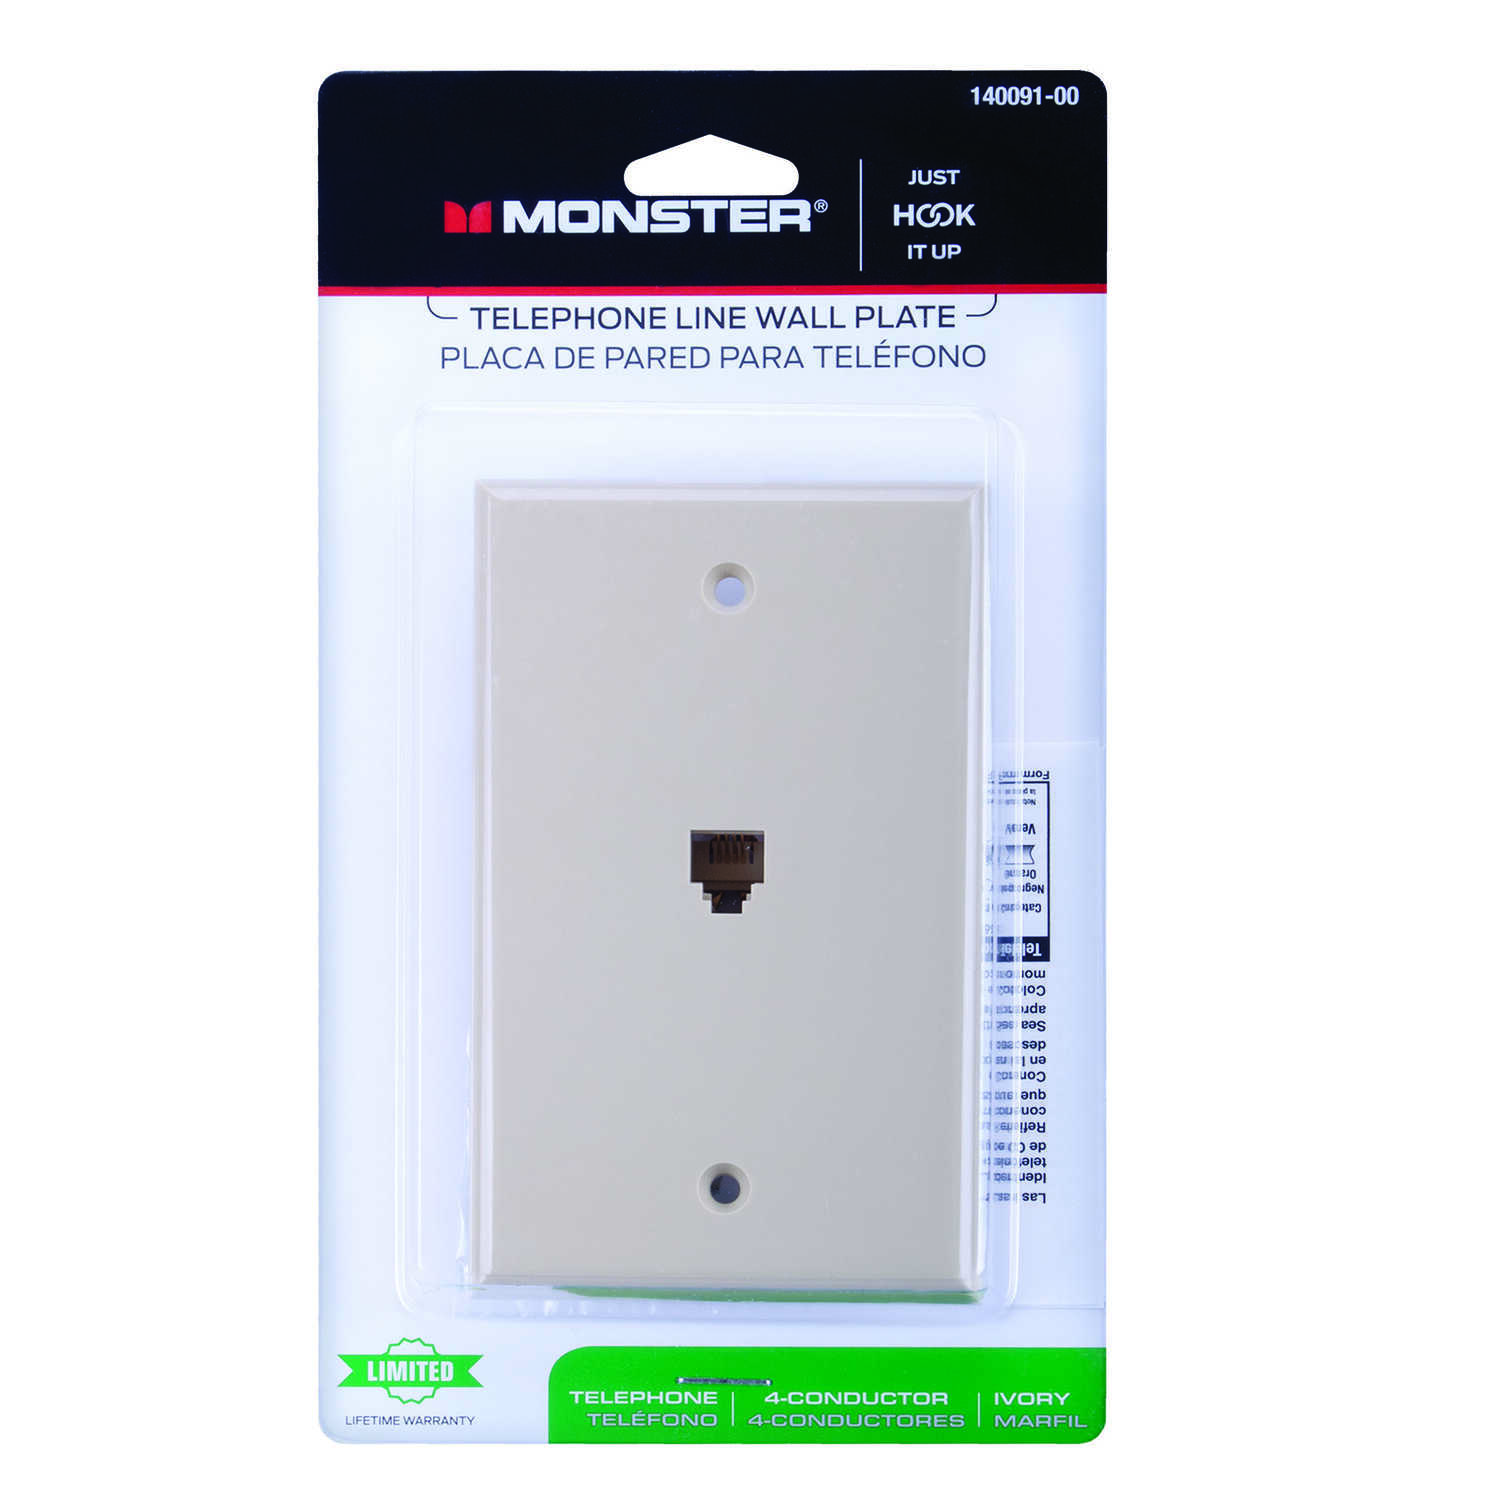 Monster Cable  Just Hook It Up  Ivory  1 gang Plastic  Telephone  Wall Plate  1 each